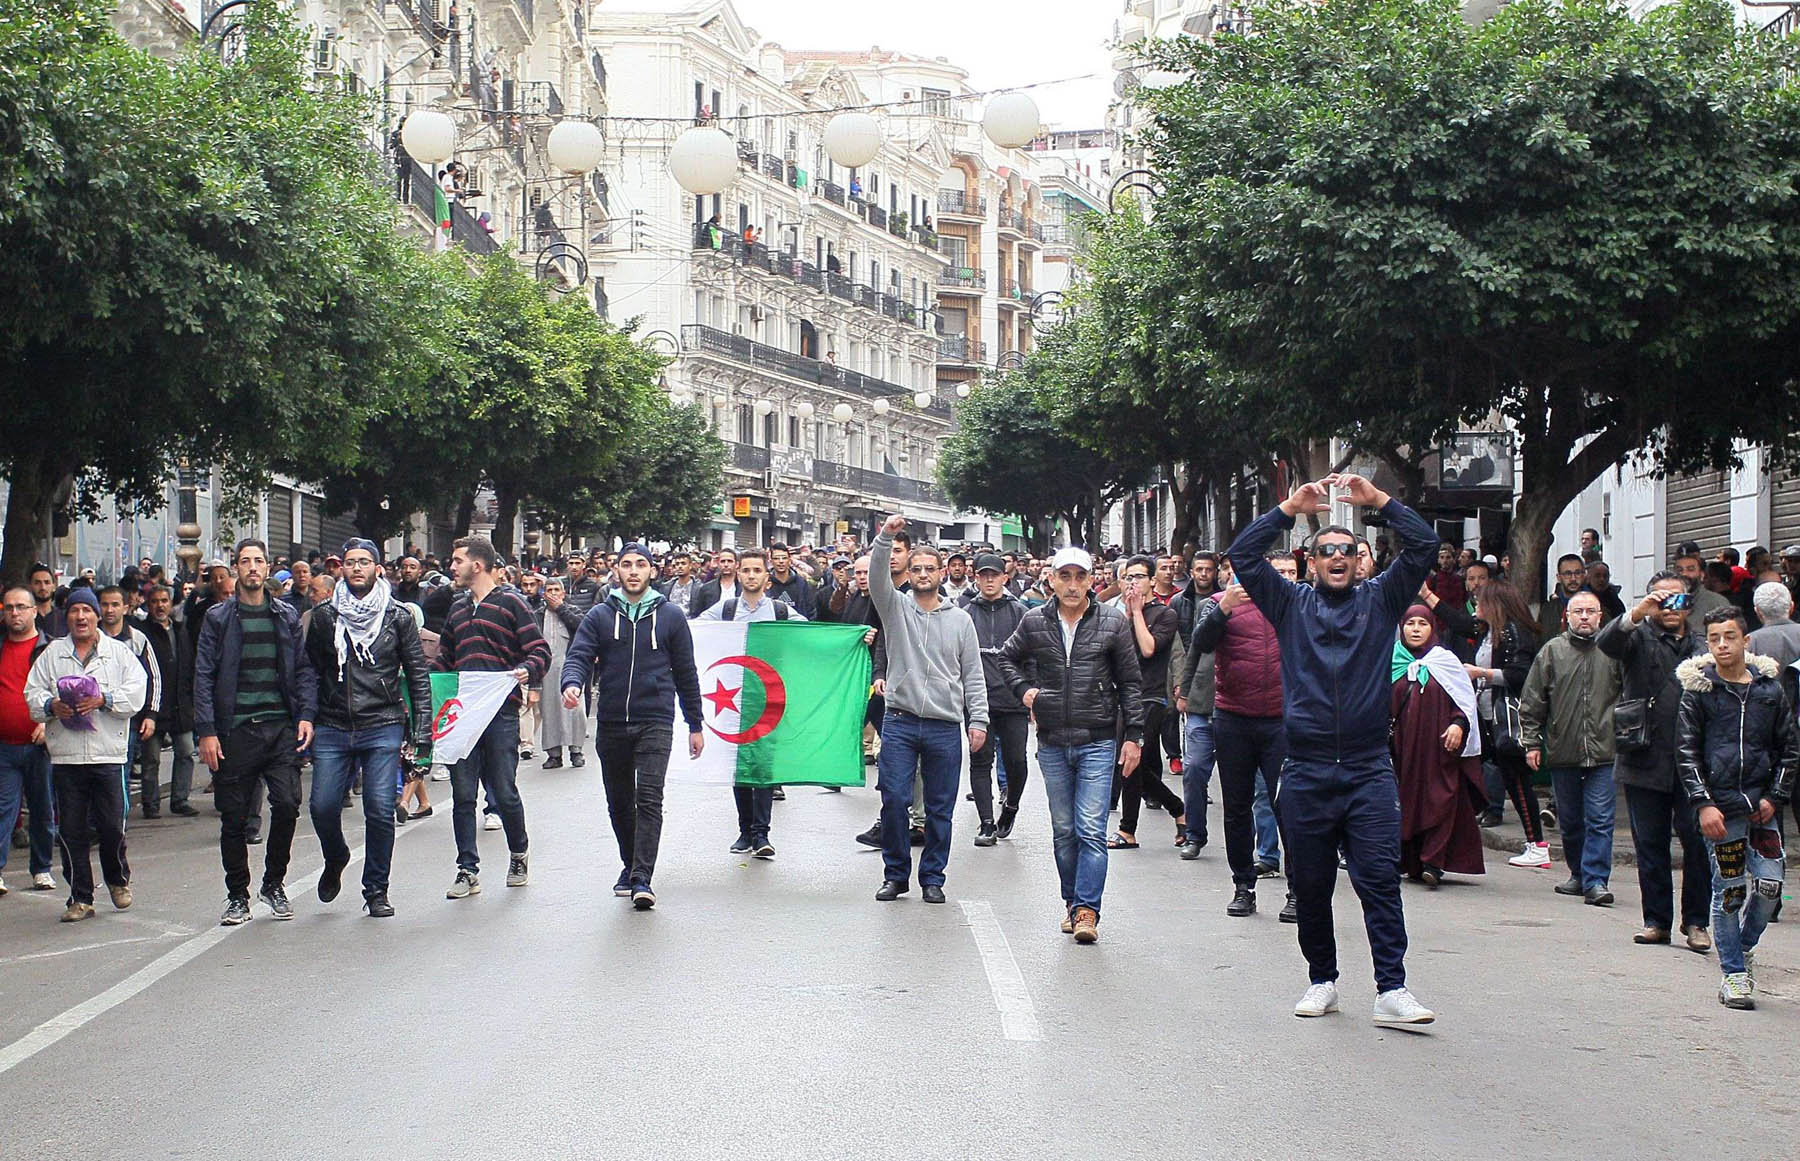 Algerian protesters take part in an anti-government demonstration in the capital Algiers on December 12 during the presidential election. (AFP)